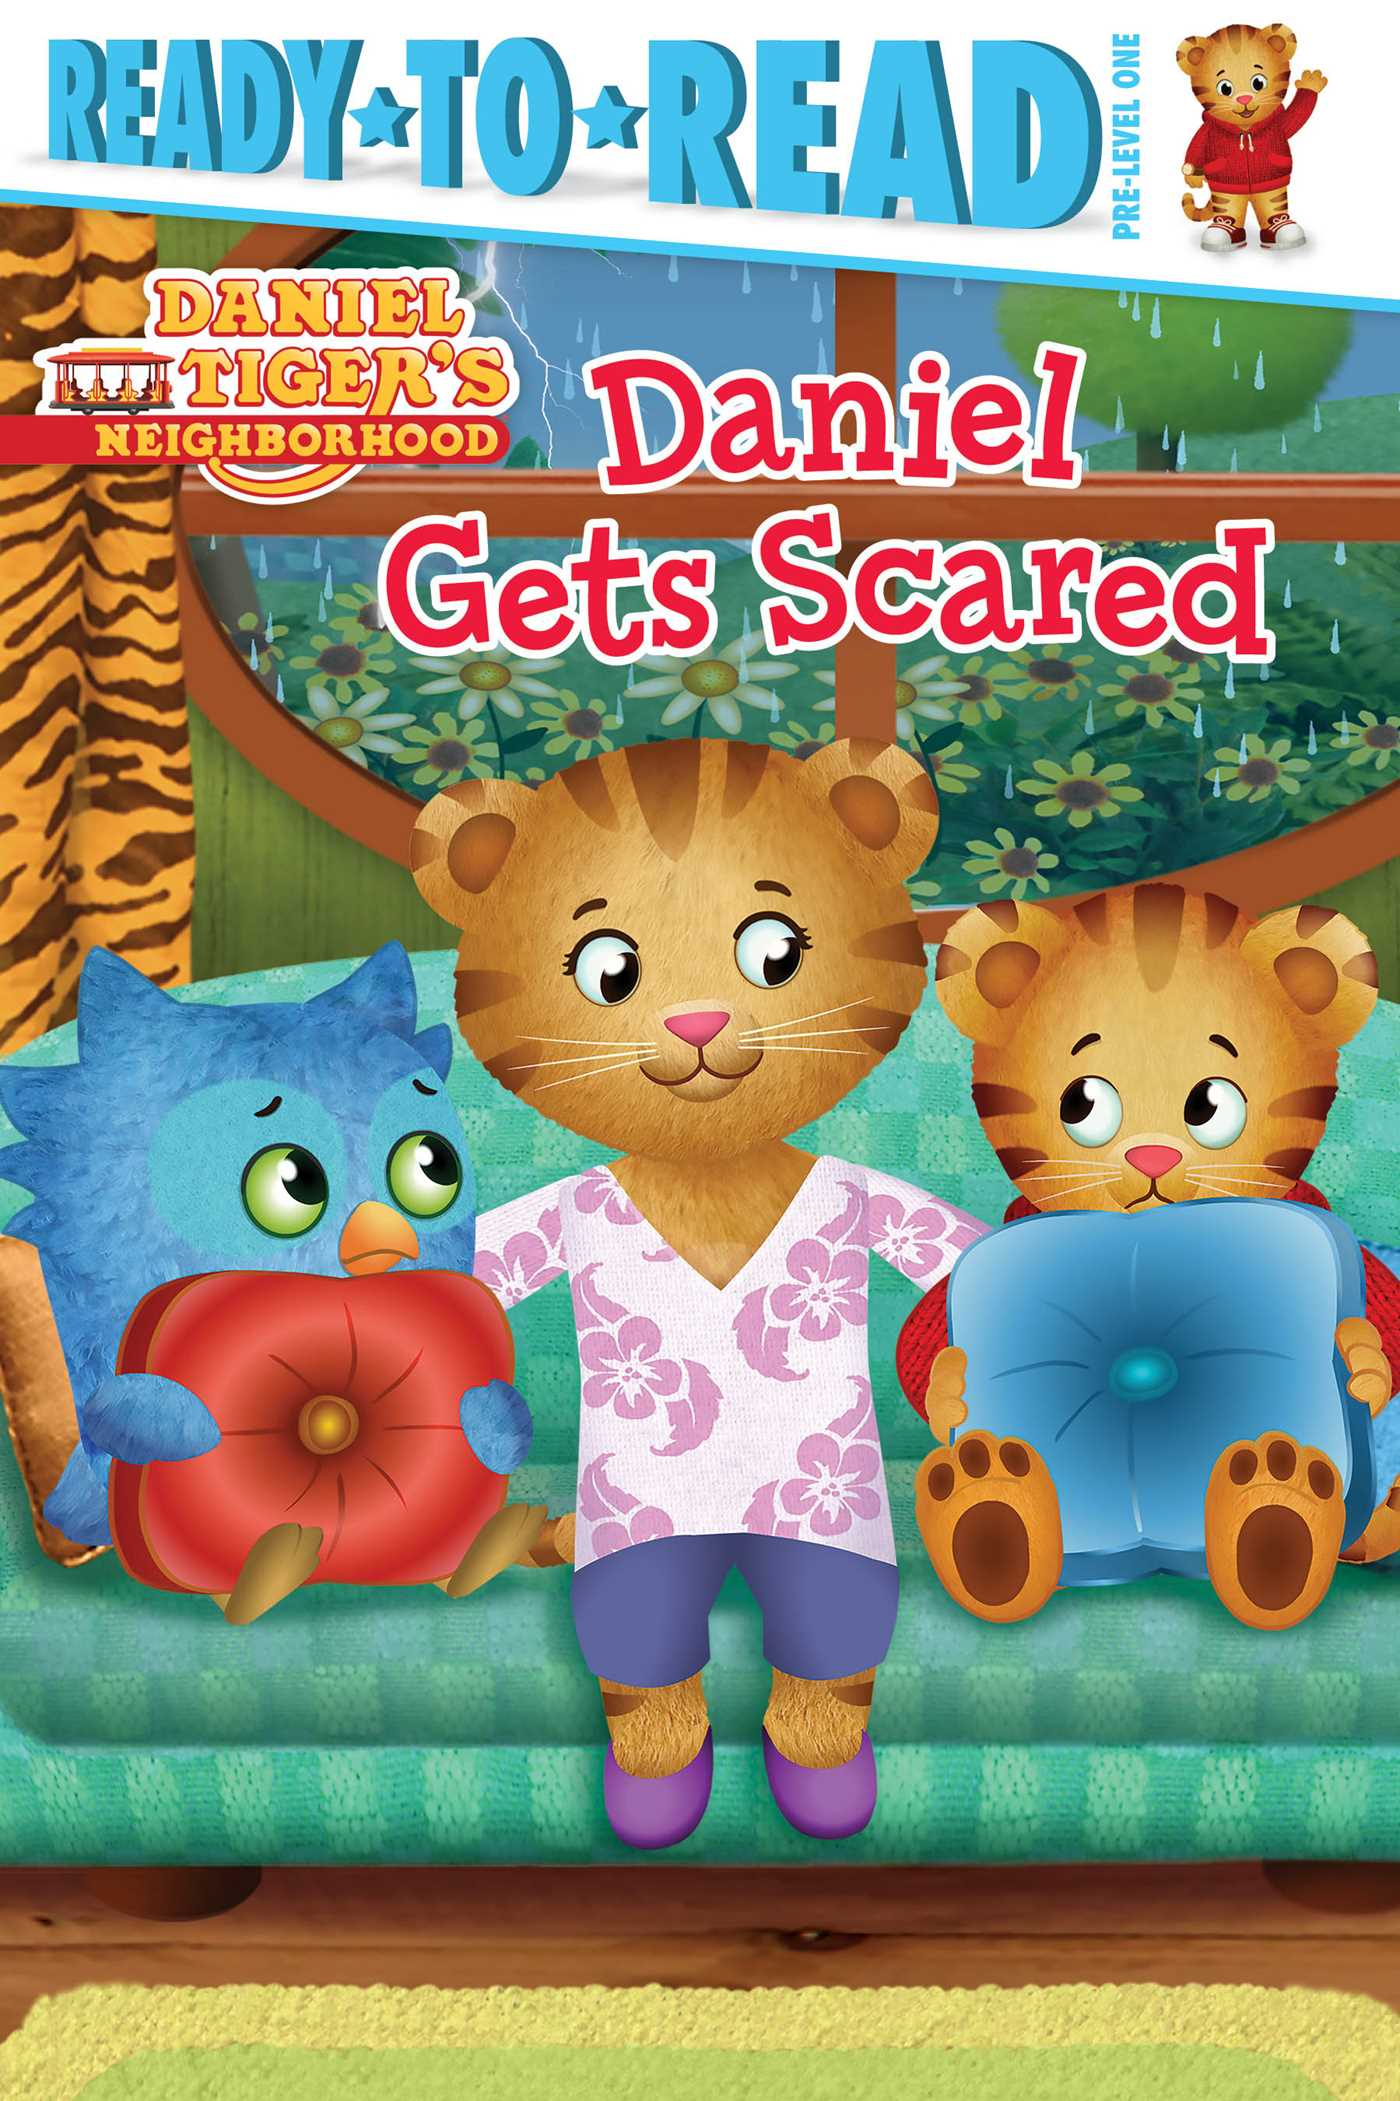 Daniel gets scared 9781481452571 hr